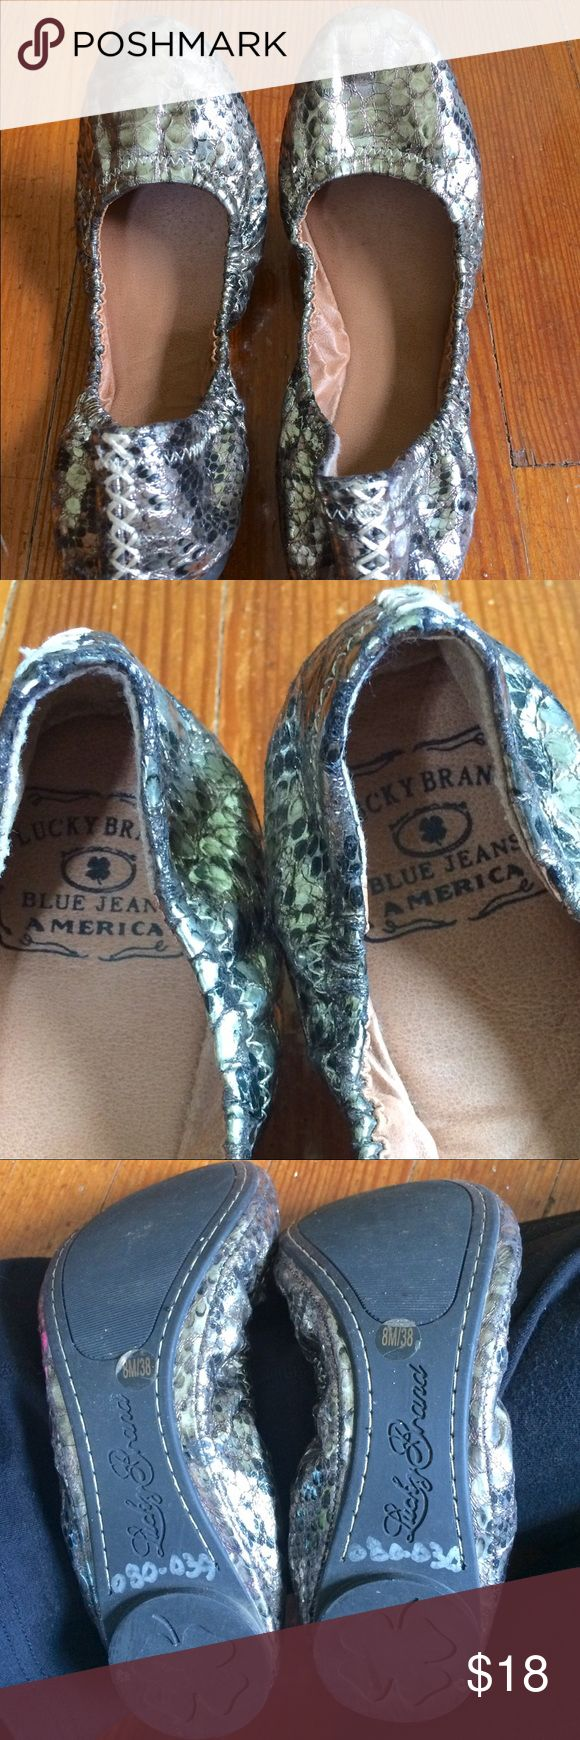 Lucky Brand leather gold metallic ballet flats Lucky Brand leather gold metallic snake print ballet flats, rounded toe, .40 heel height, gorgeous stitching inside and out, wore only a few times Lucky Brand Shoes Flats & Loafers